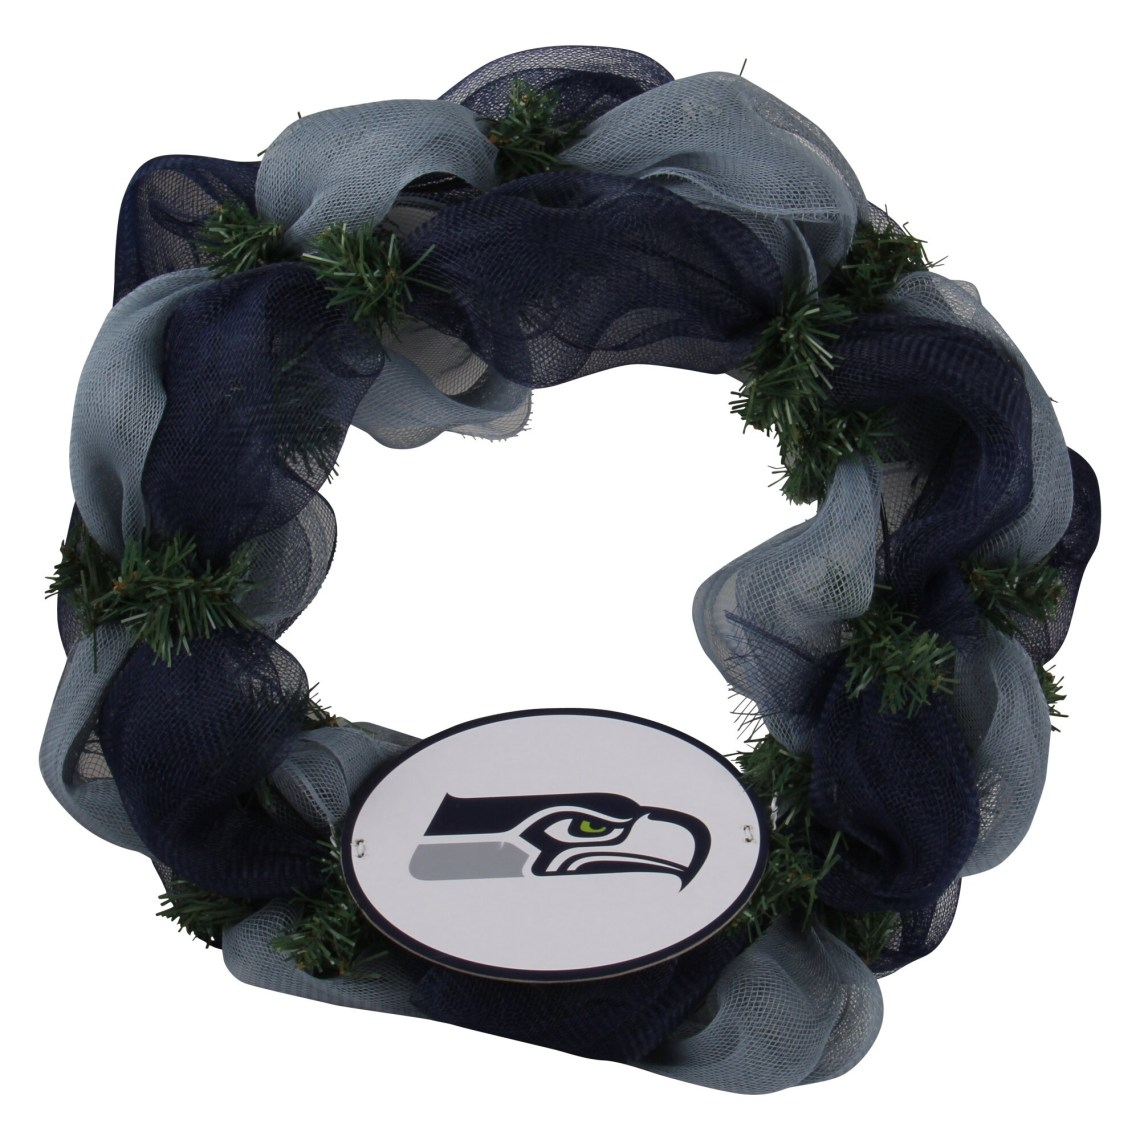 Seattle Seahawks Mesh Wreath